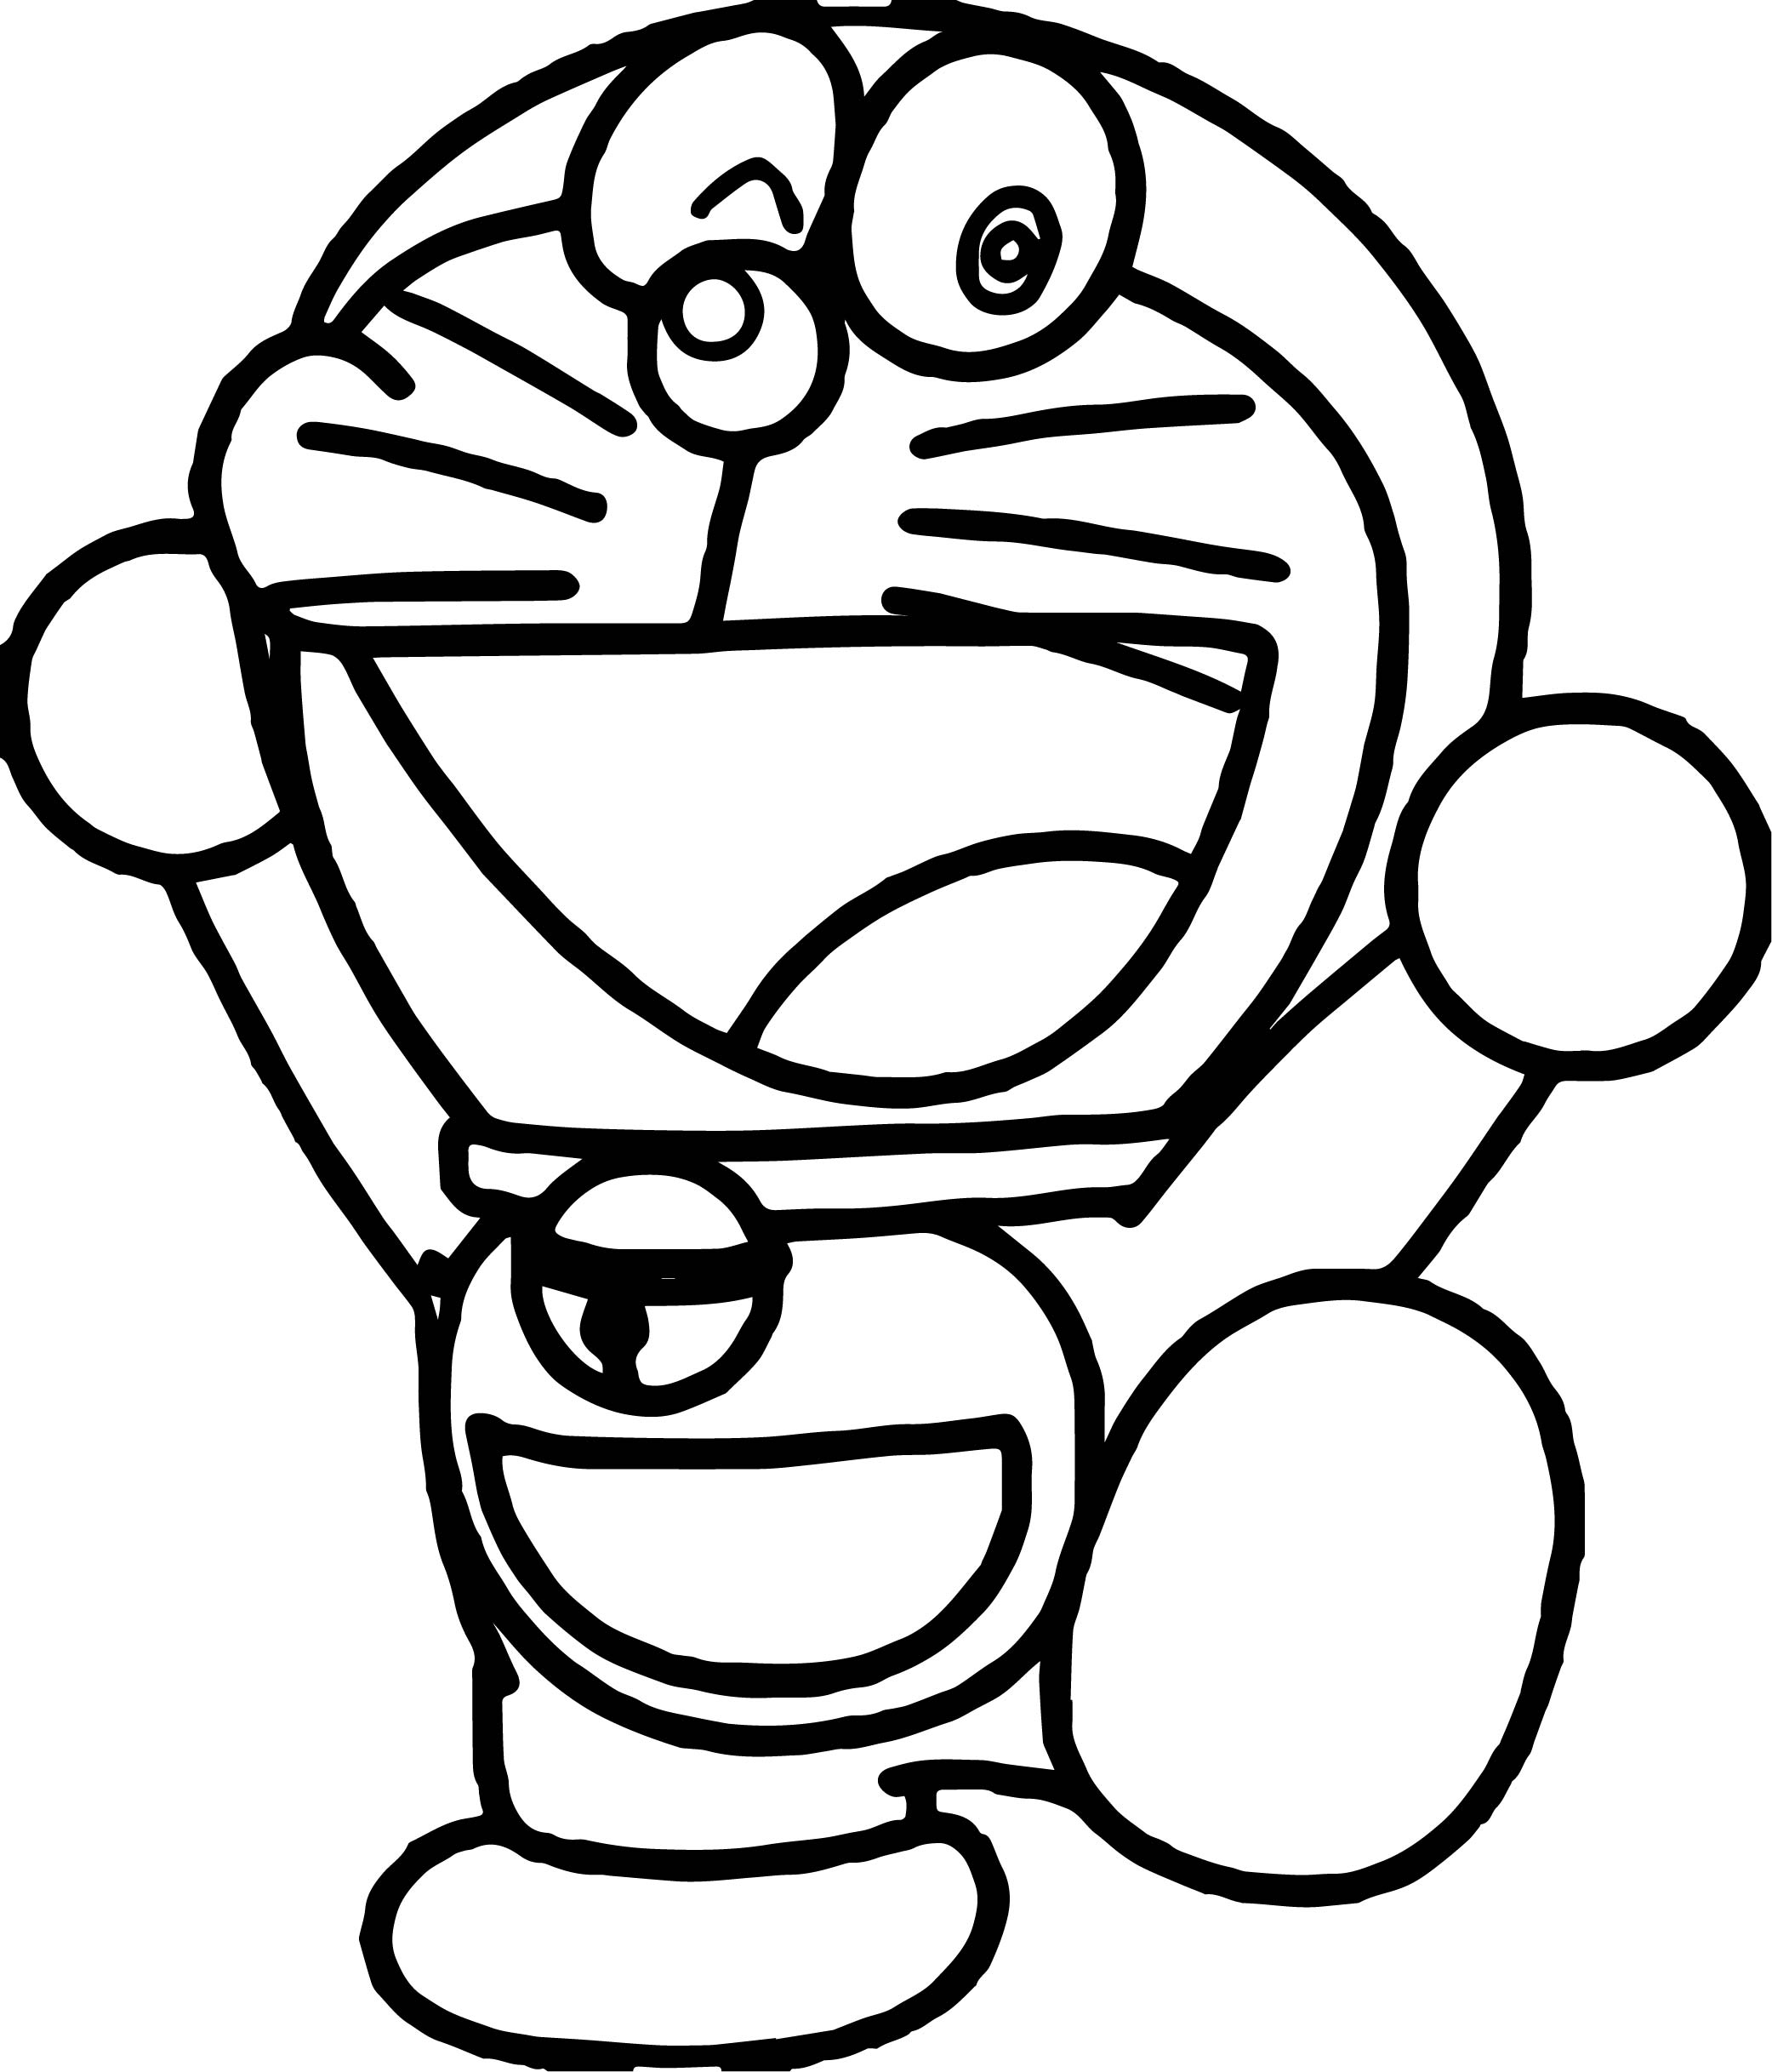 Doraemon And Friends Coloring Pages For Kids Printable